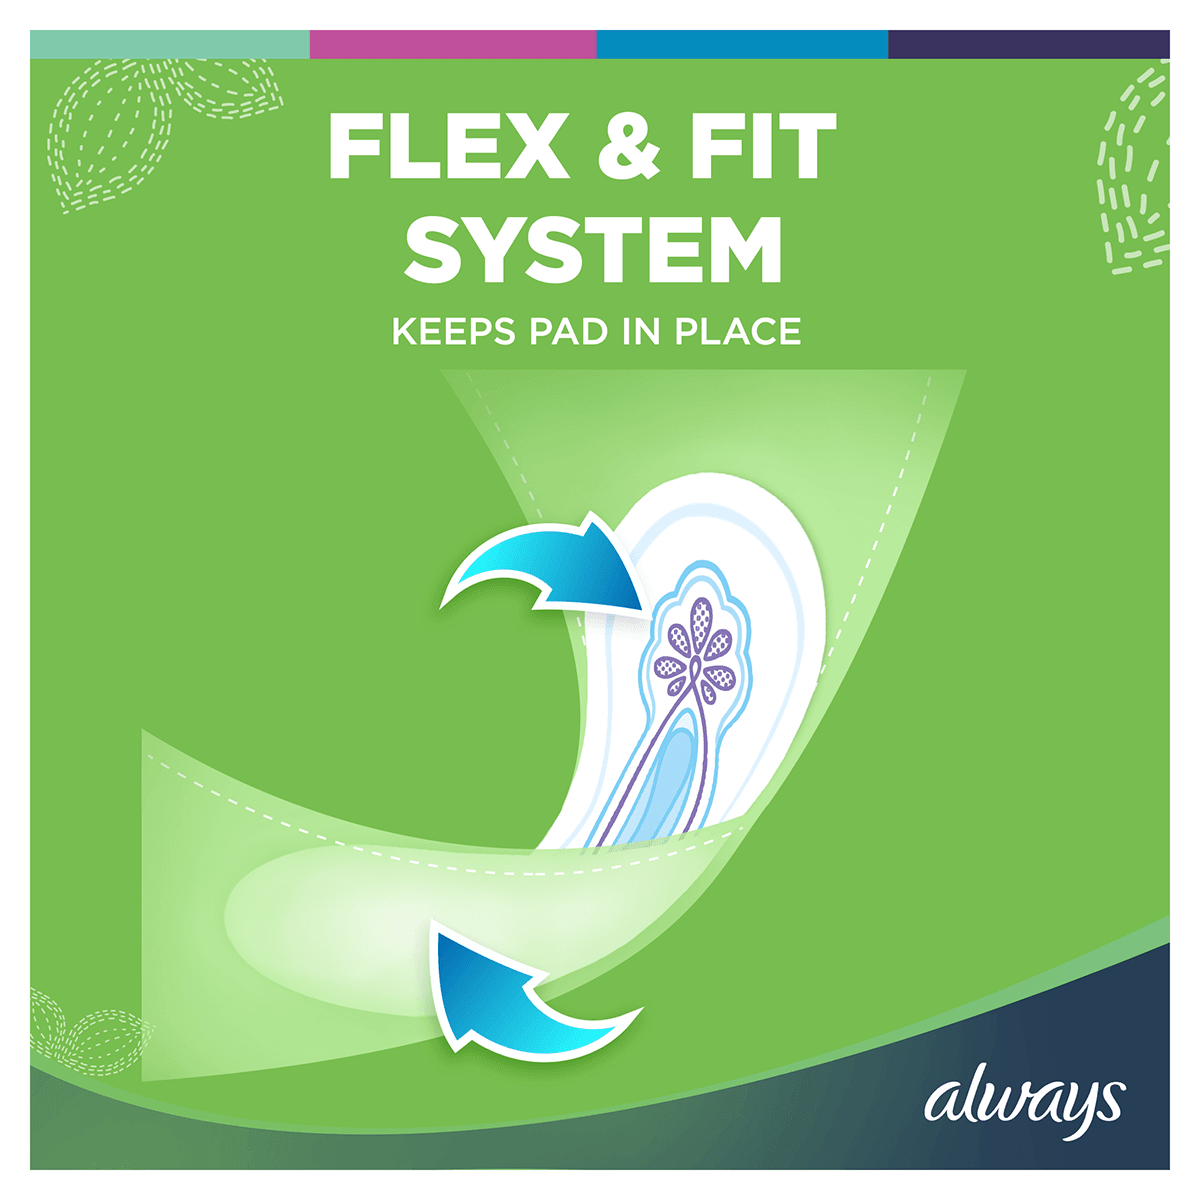 ALWAYS Ultra Normal Sanitary Towel Menstrual Cycle Flex & Fit System